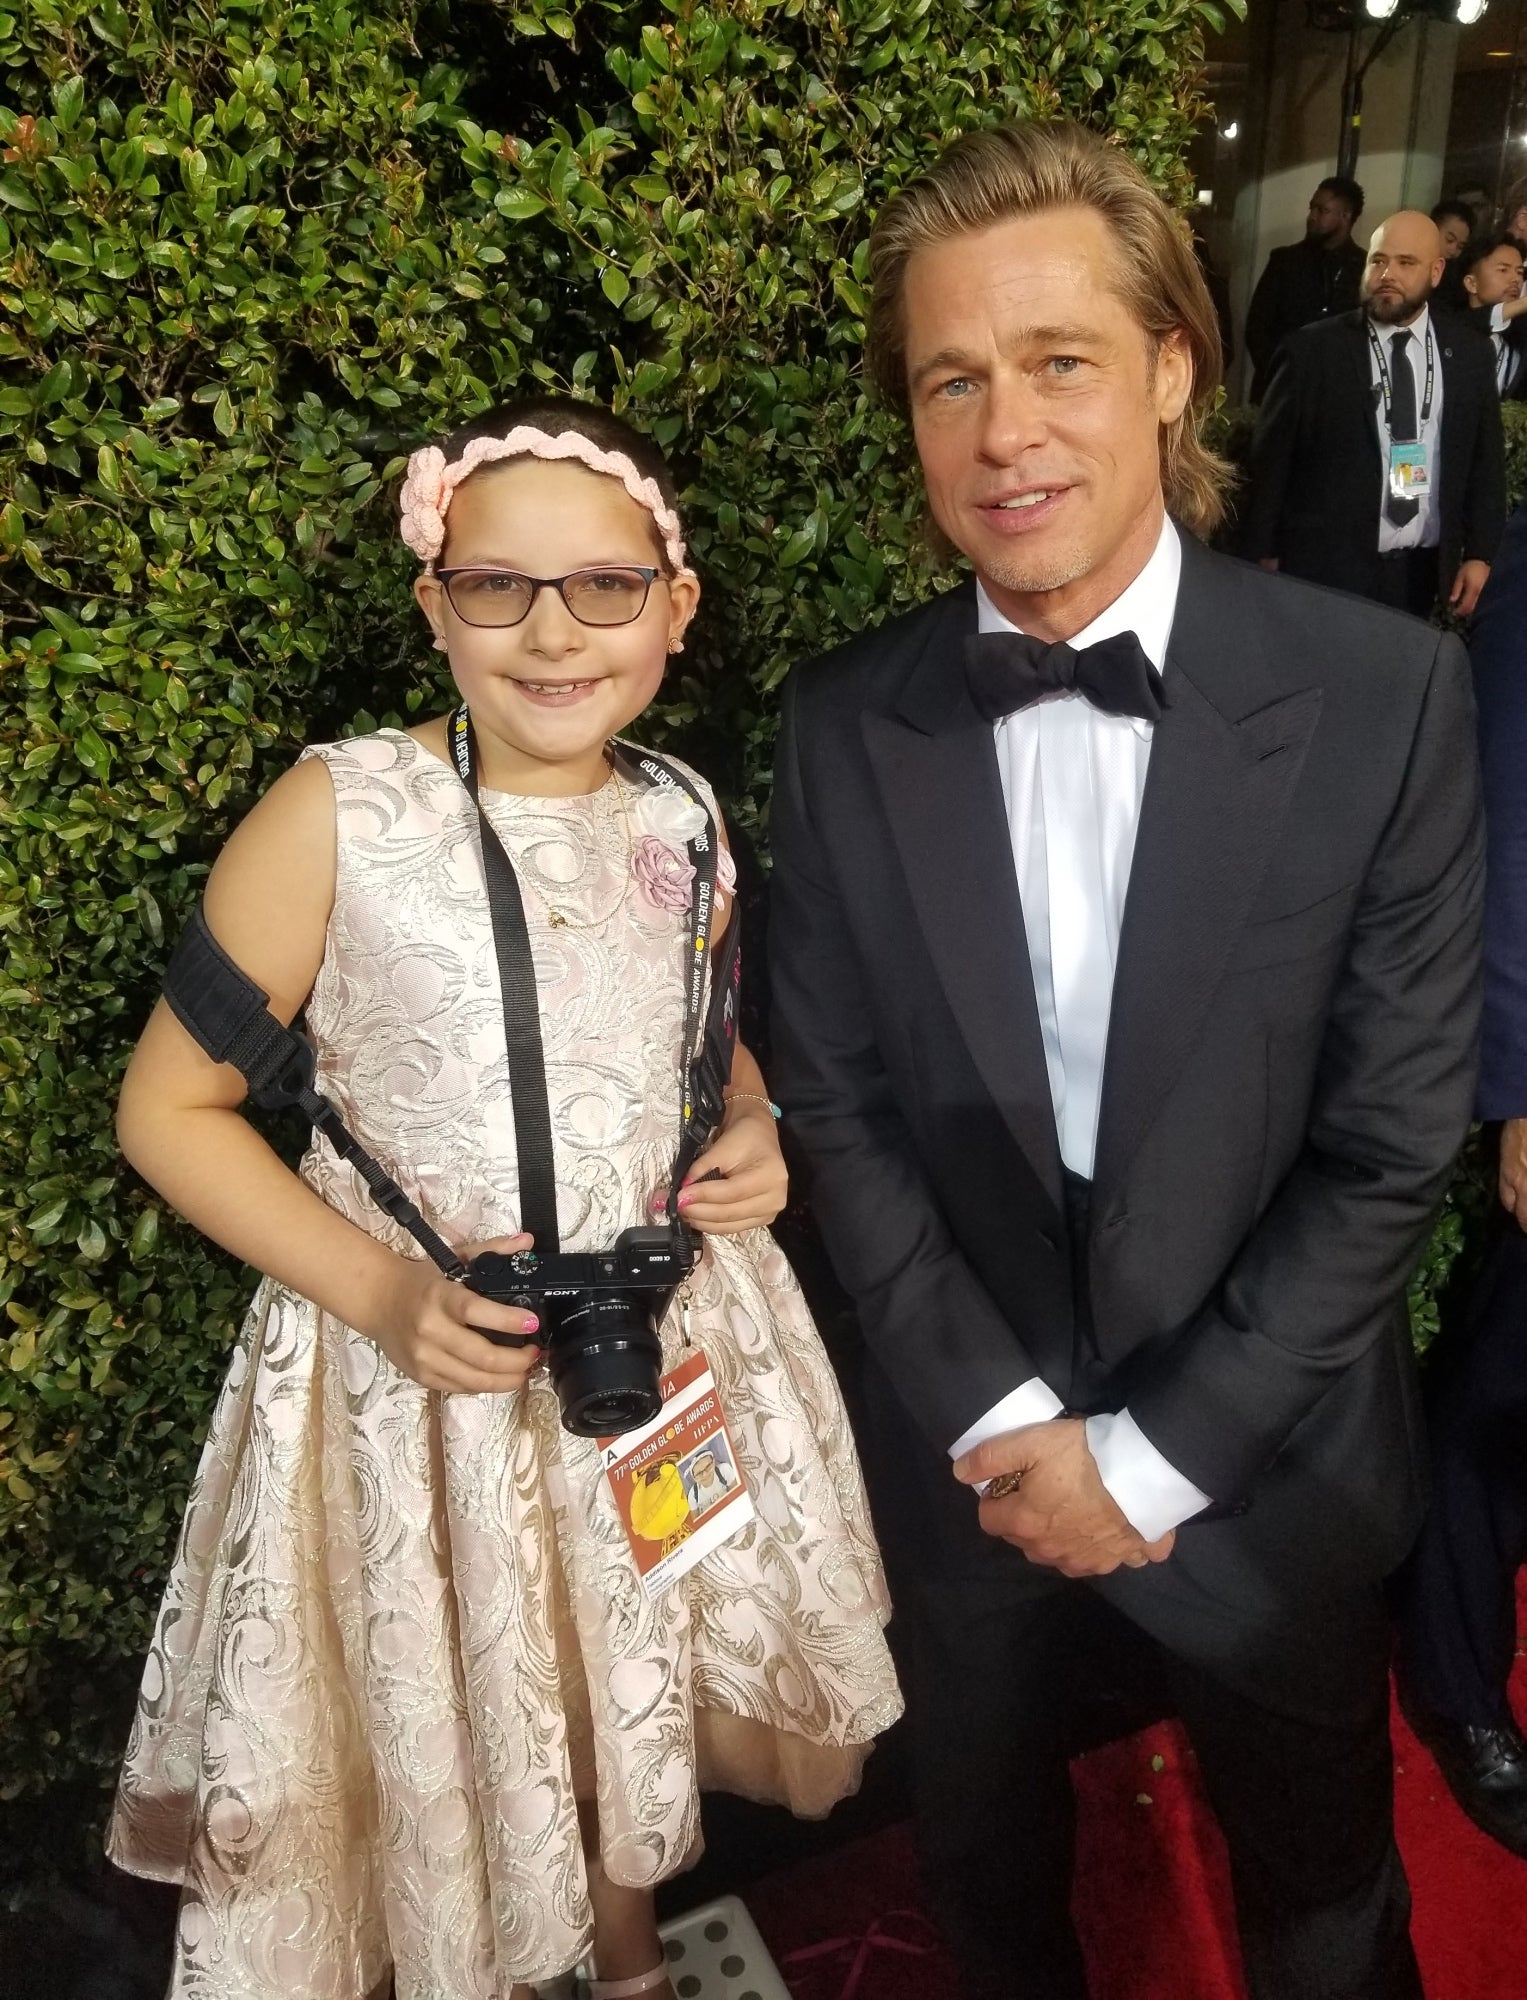 Addison Rivera and Brad Pitt